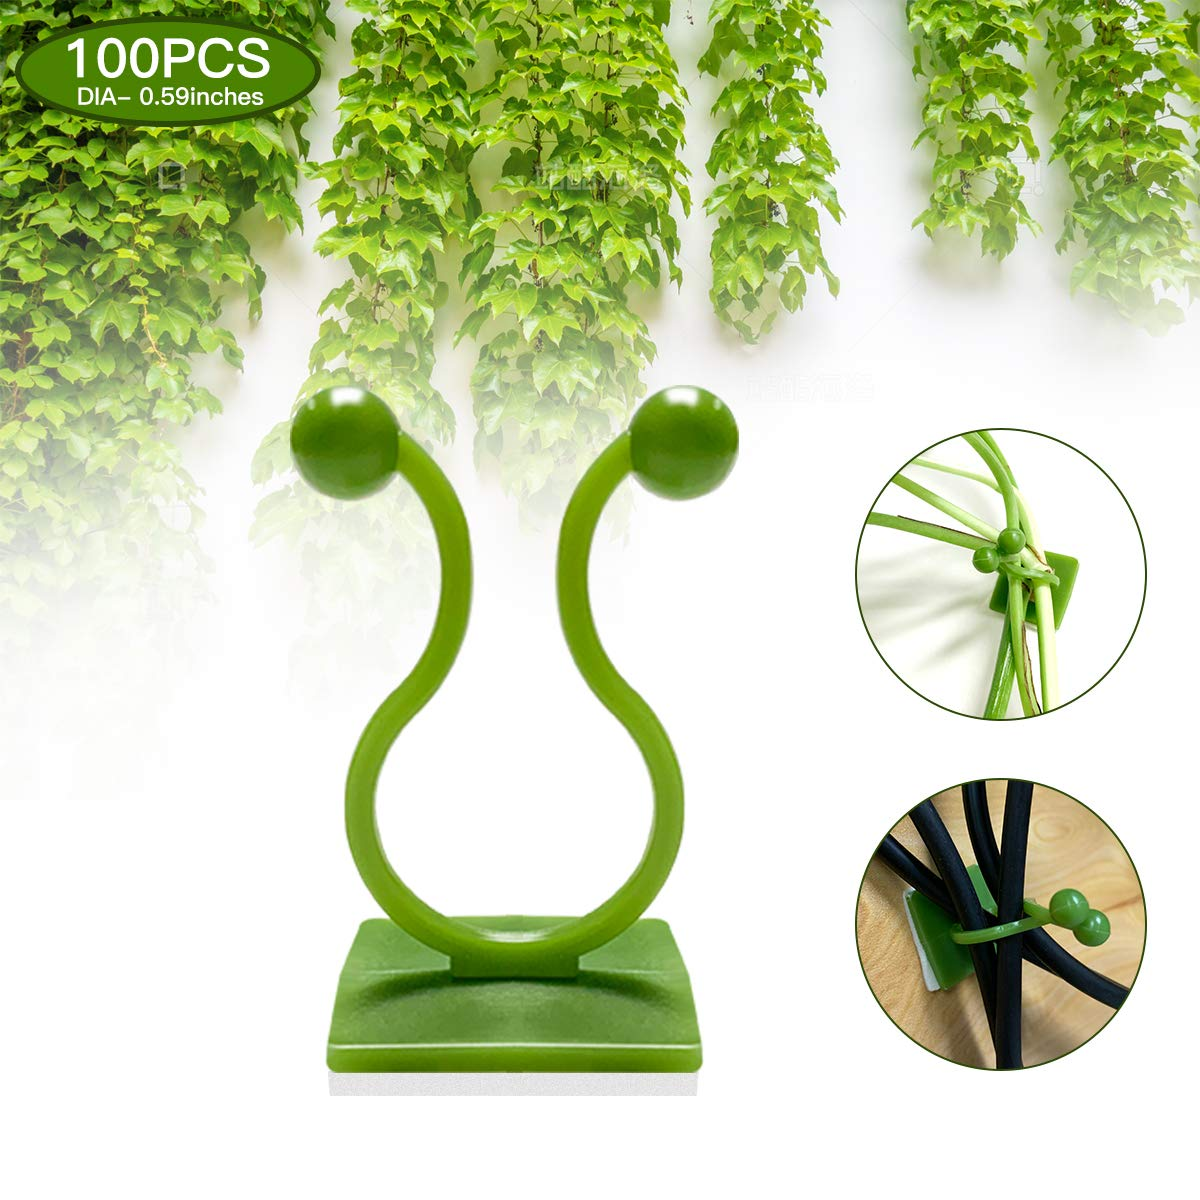 lisade Plant Climbing Wall Fixture Clips, 2 in 1 Garden Plant Flower Fixer Cable Line Organizer, Self-Adhesive Hook Invisible Wall Vines Traction Fixture for Home Decoration (Medium 100 Pcs,Green)